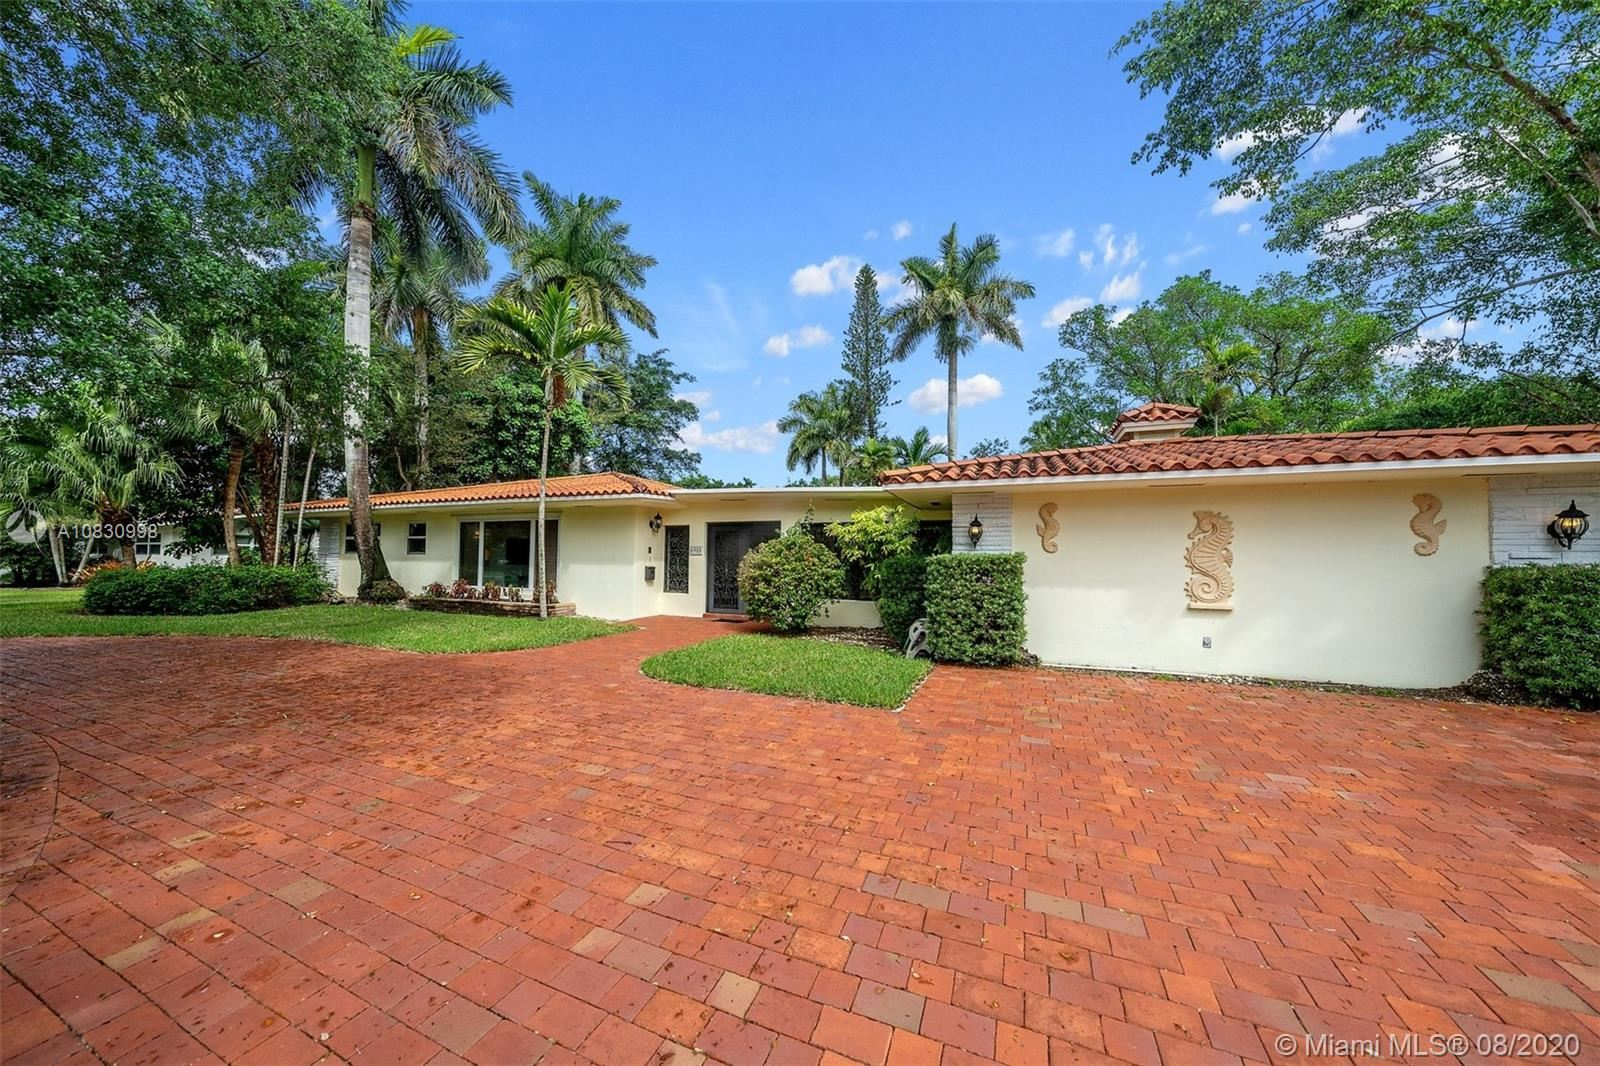 6955 SW 107th St, Pinecrest, FL 33156 - #: A10830998